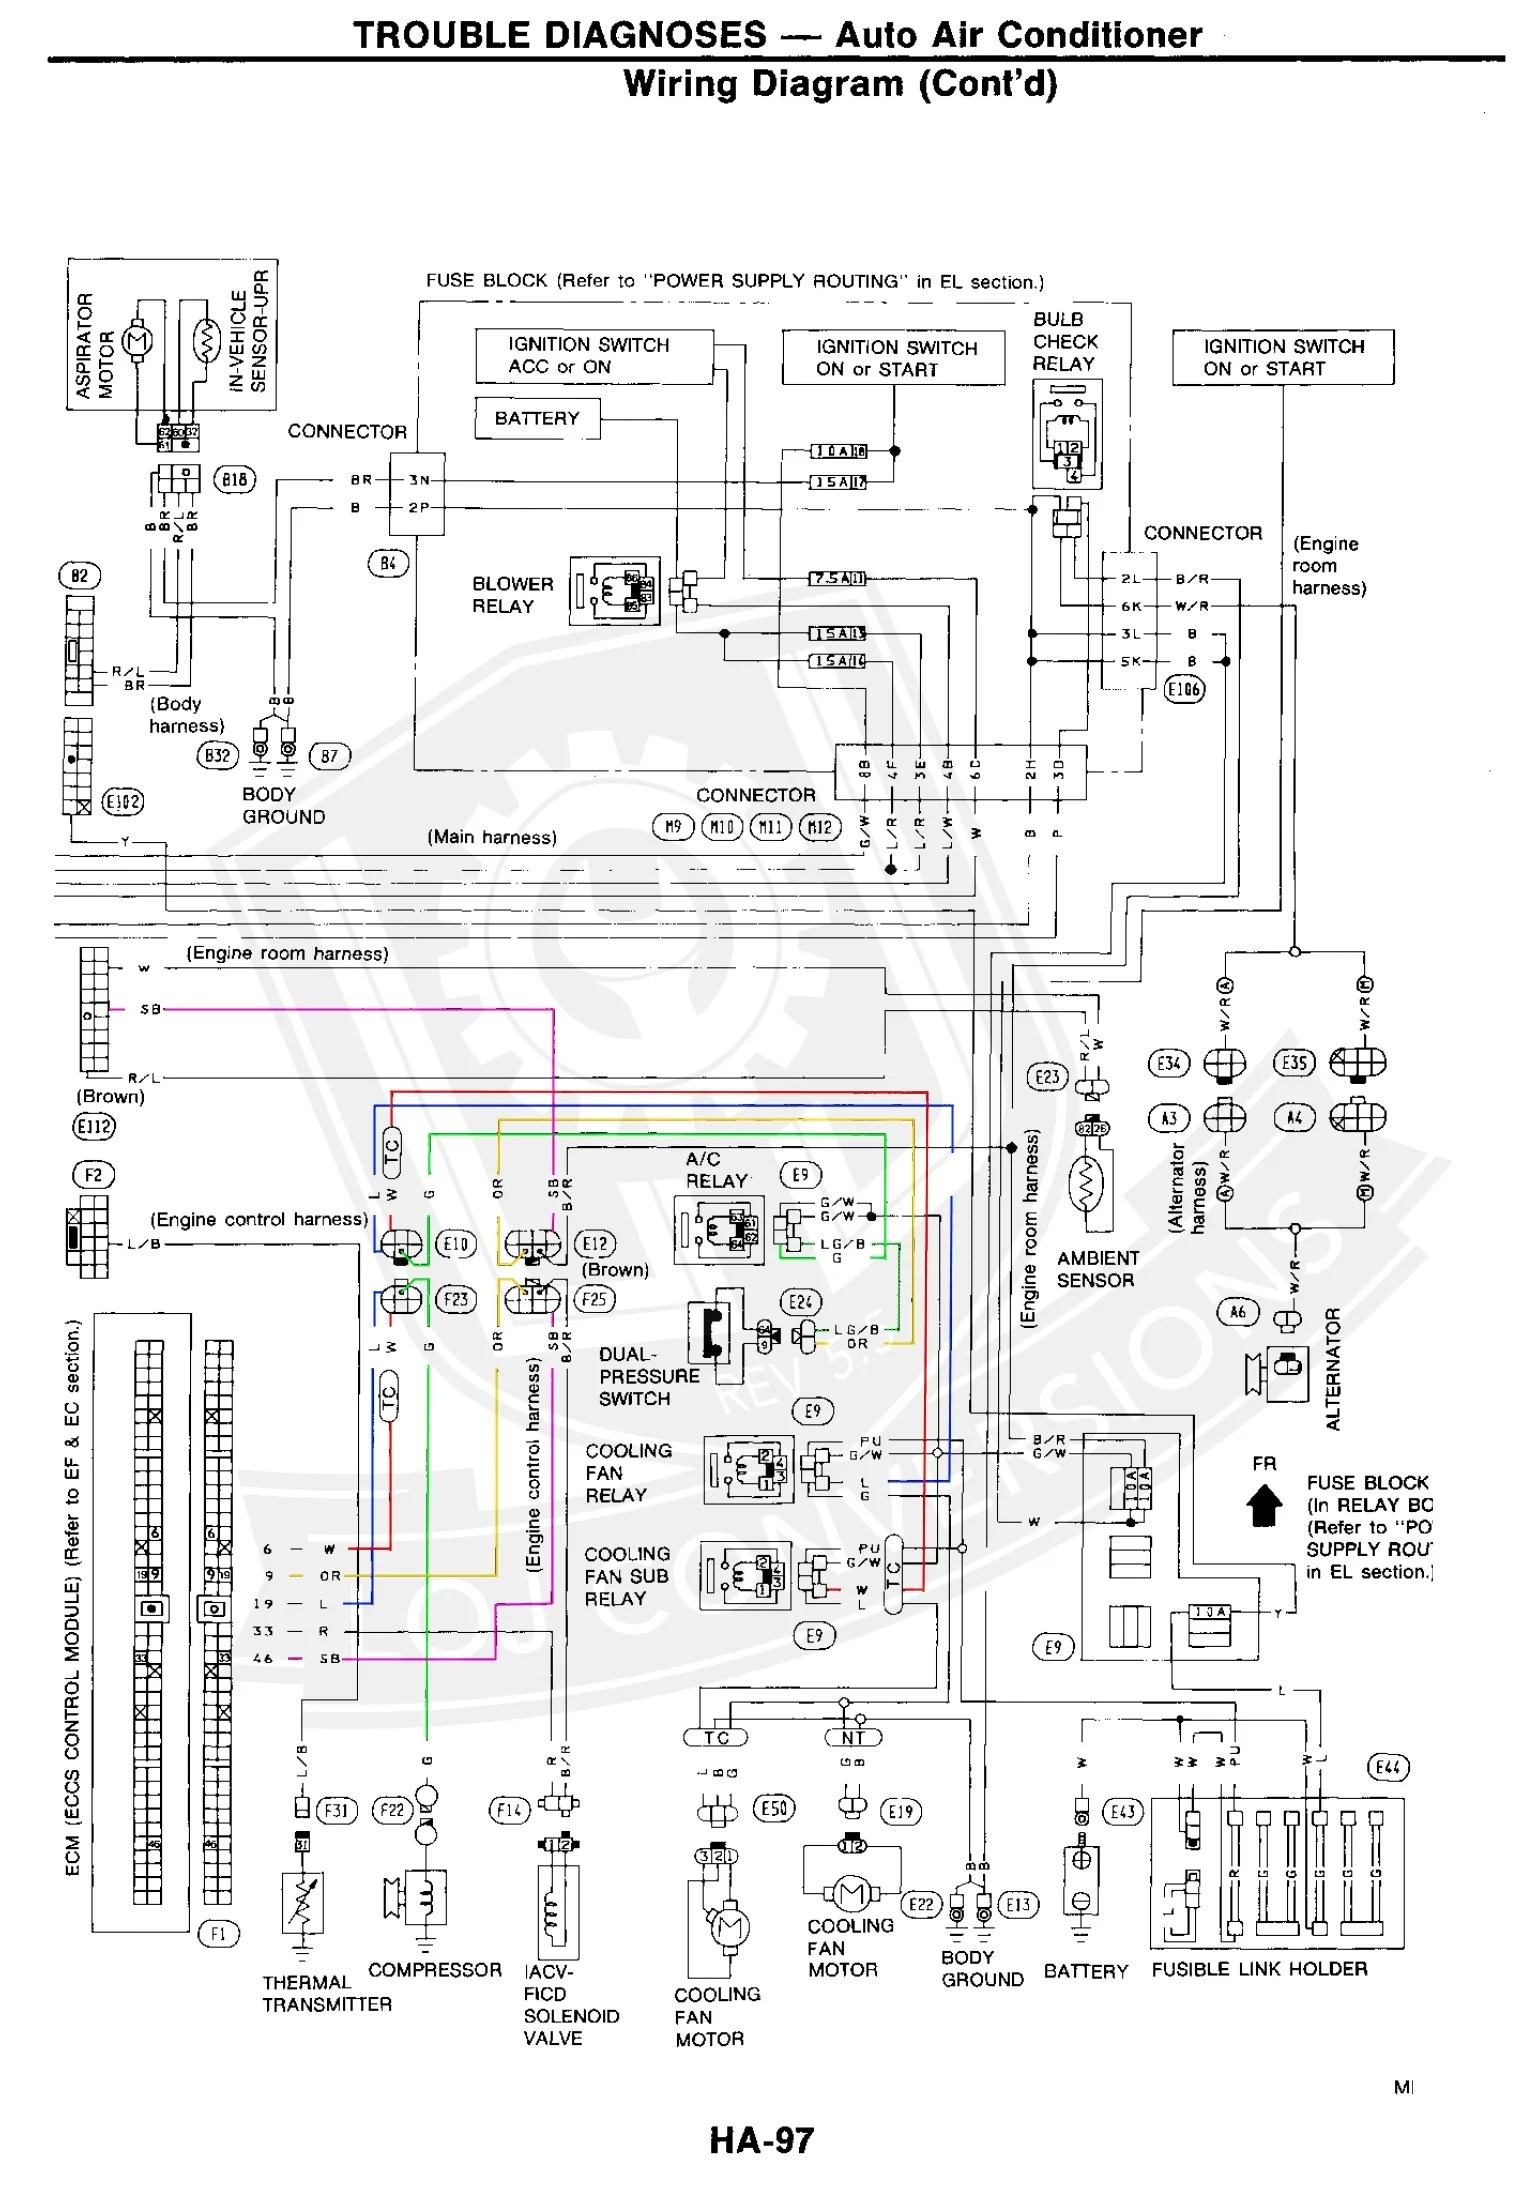 300zx wire diagram wiring diagram centre 87 300zx wiring diagram [ 1515 x 2194 Pixel ]